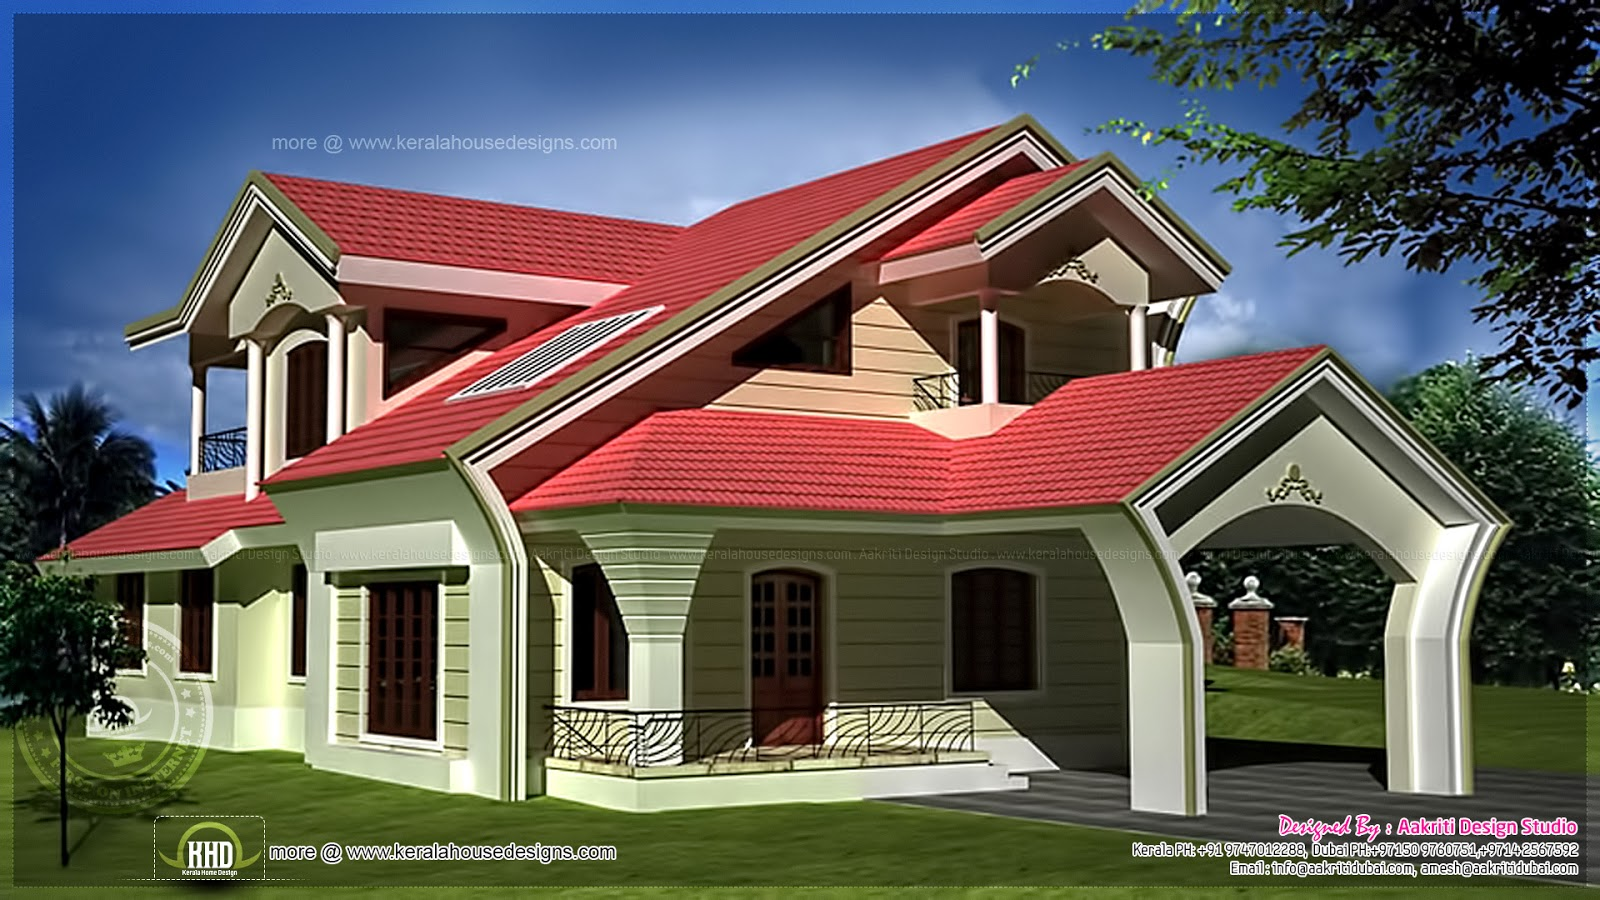 September 2013 kerala home design and floor plans for Custom house ideas